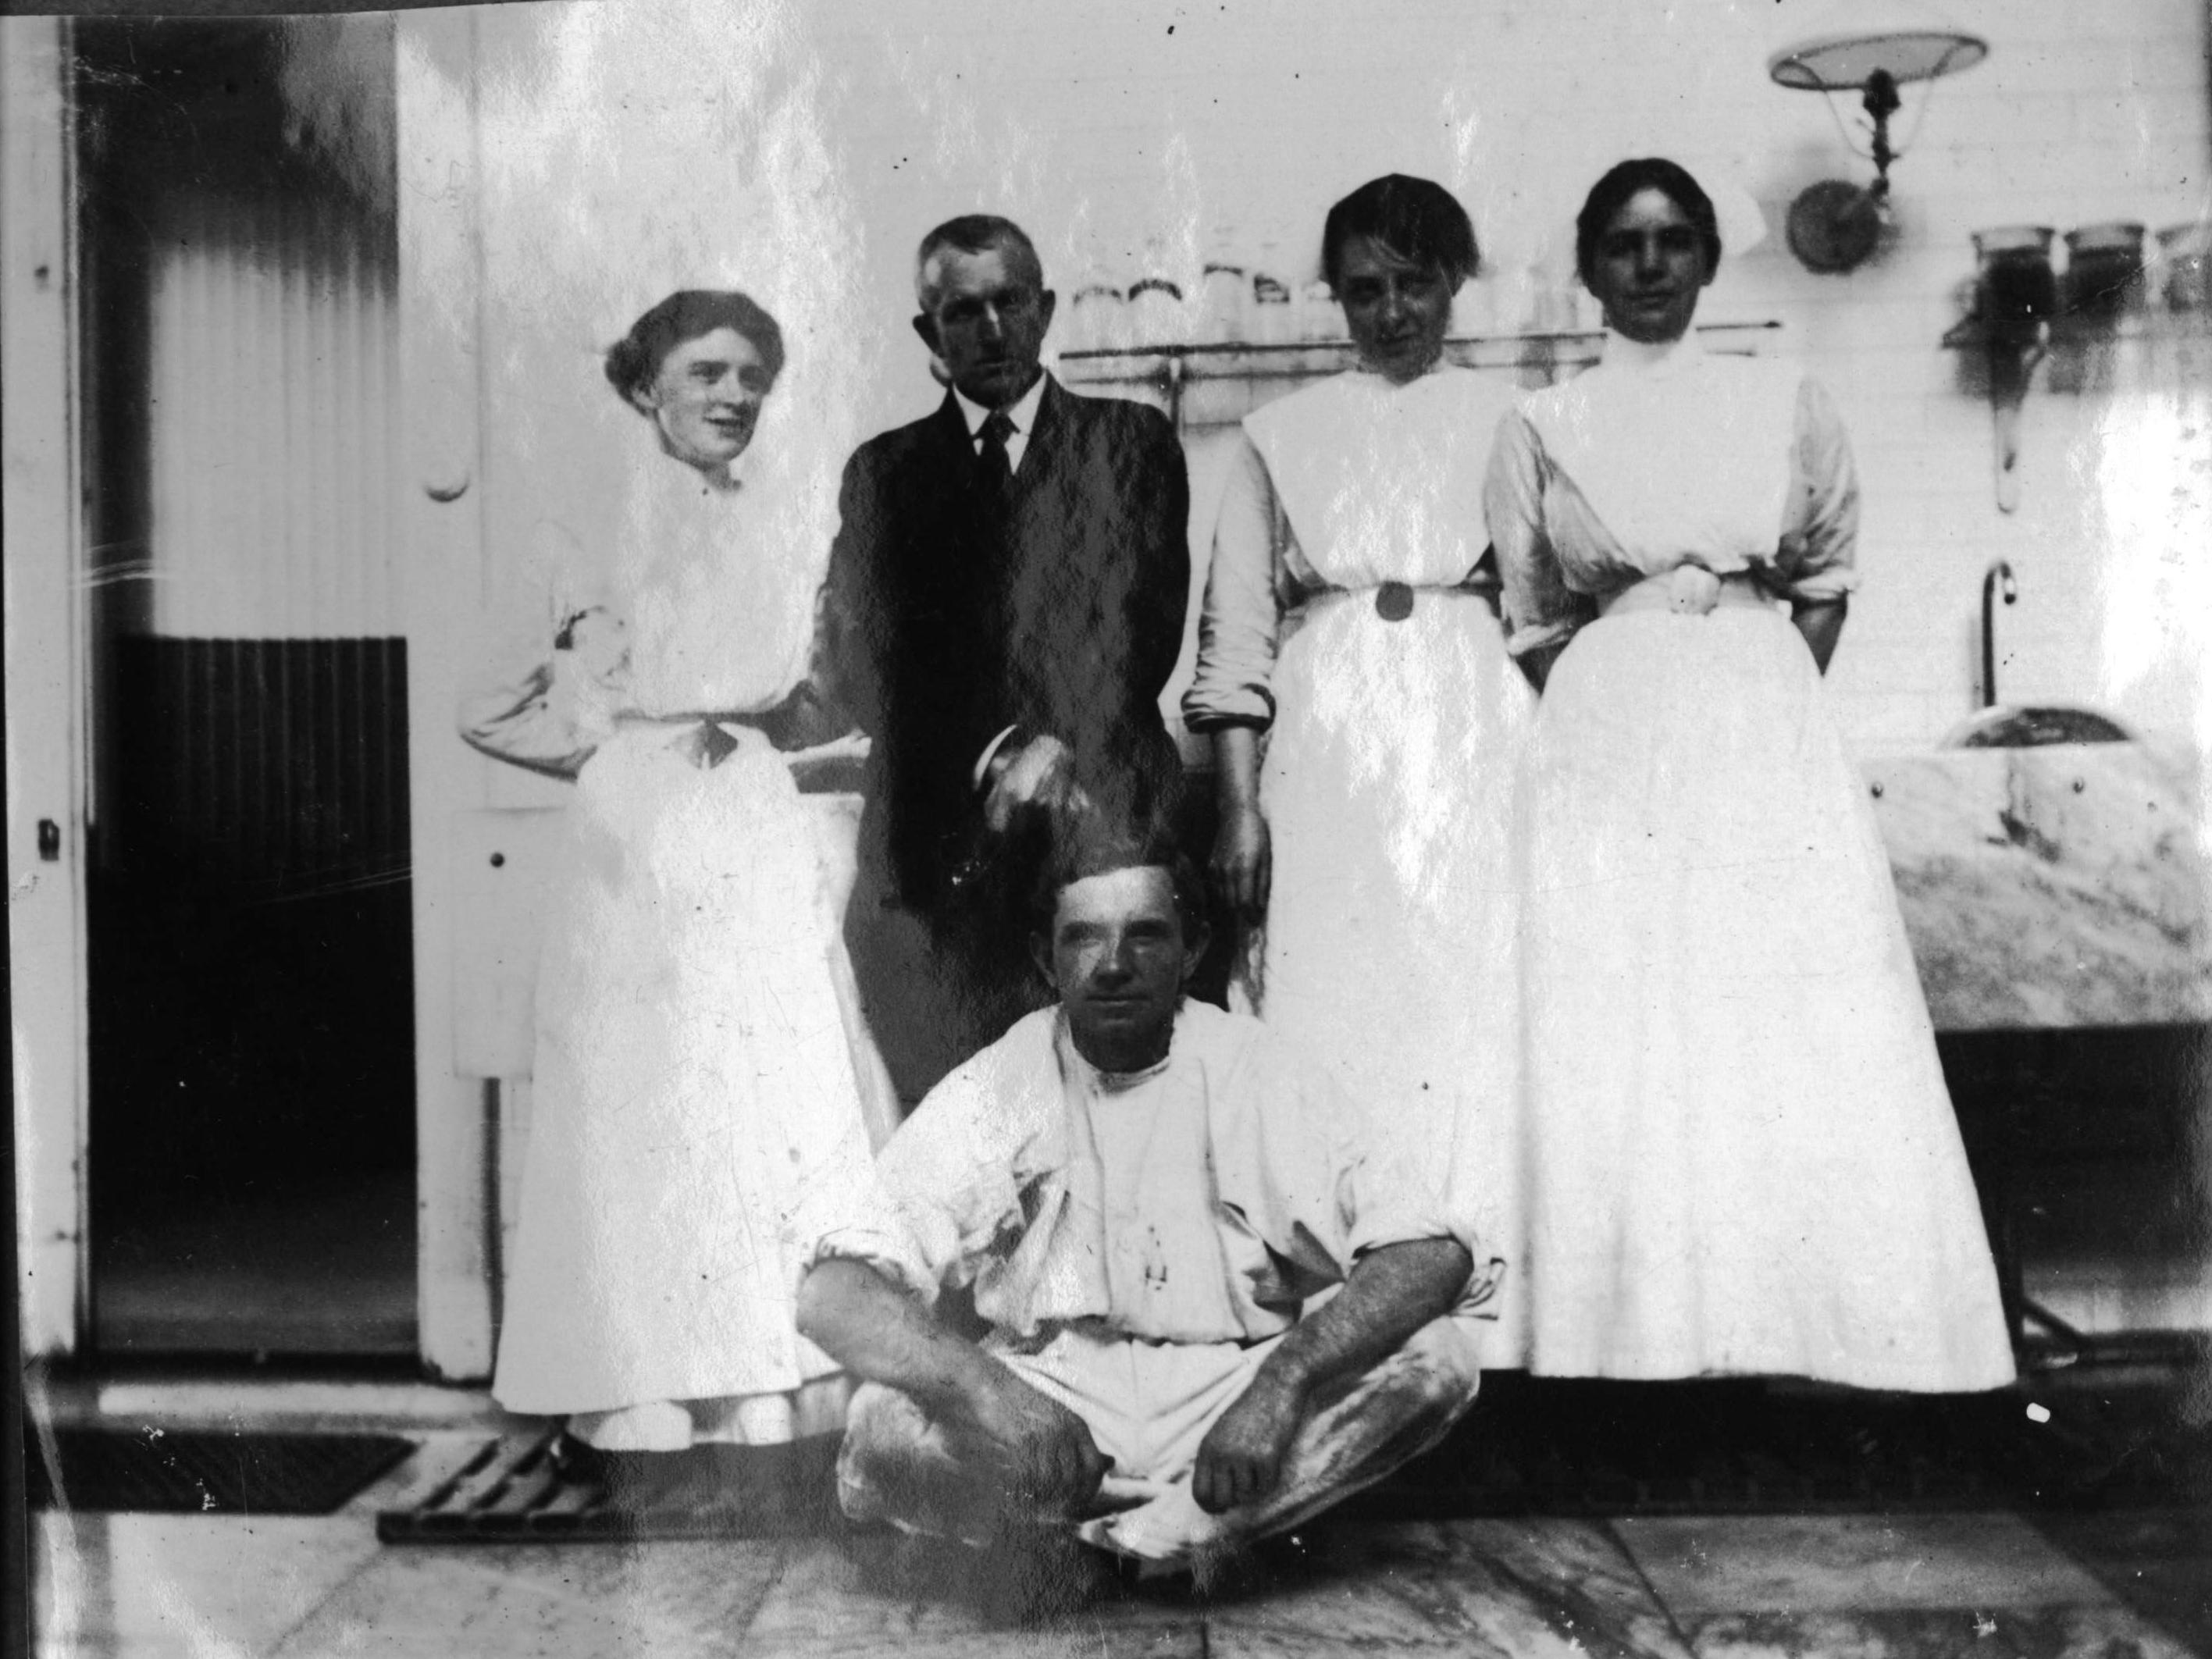 NURSE CLEMENTINA MARSHALL ON RIGHT SIDE OF SYDNEY HOSPITAL SURGEON DOCTOR FIASCHI INSIDE OPERATING R